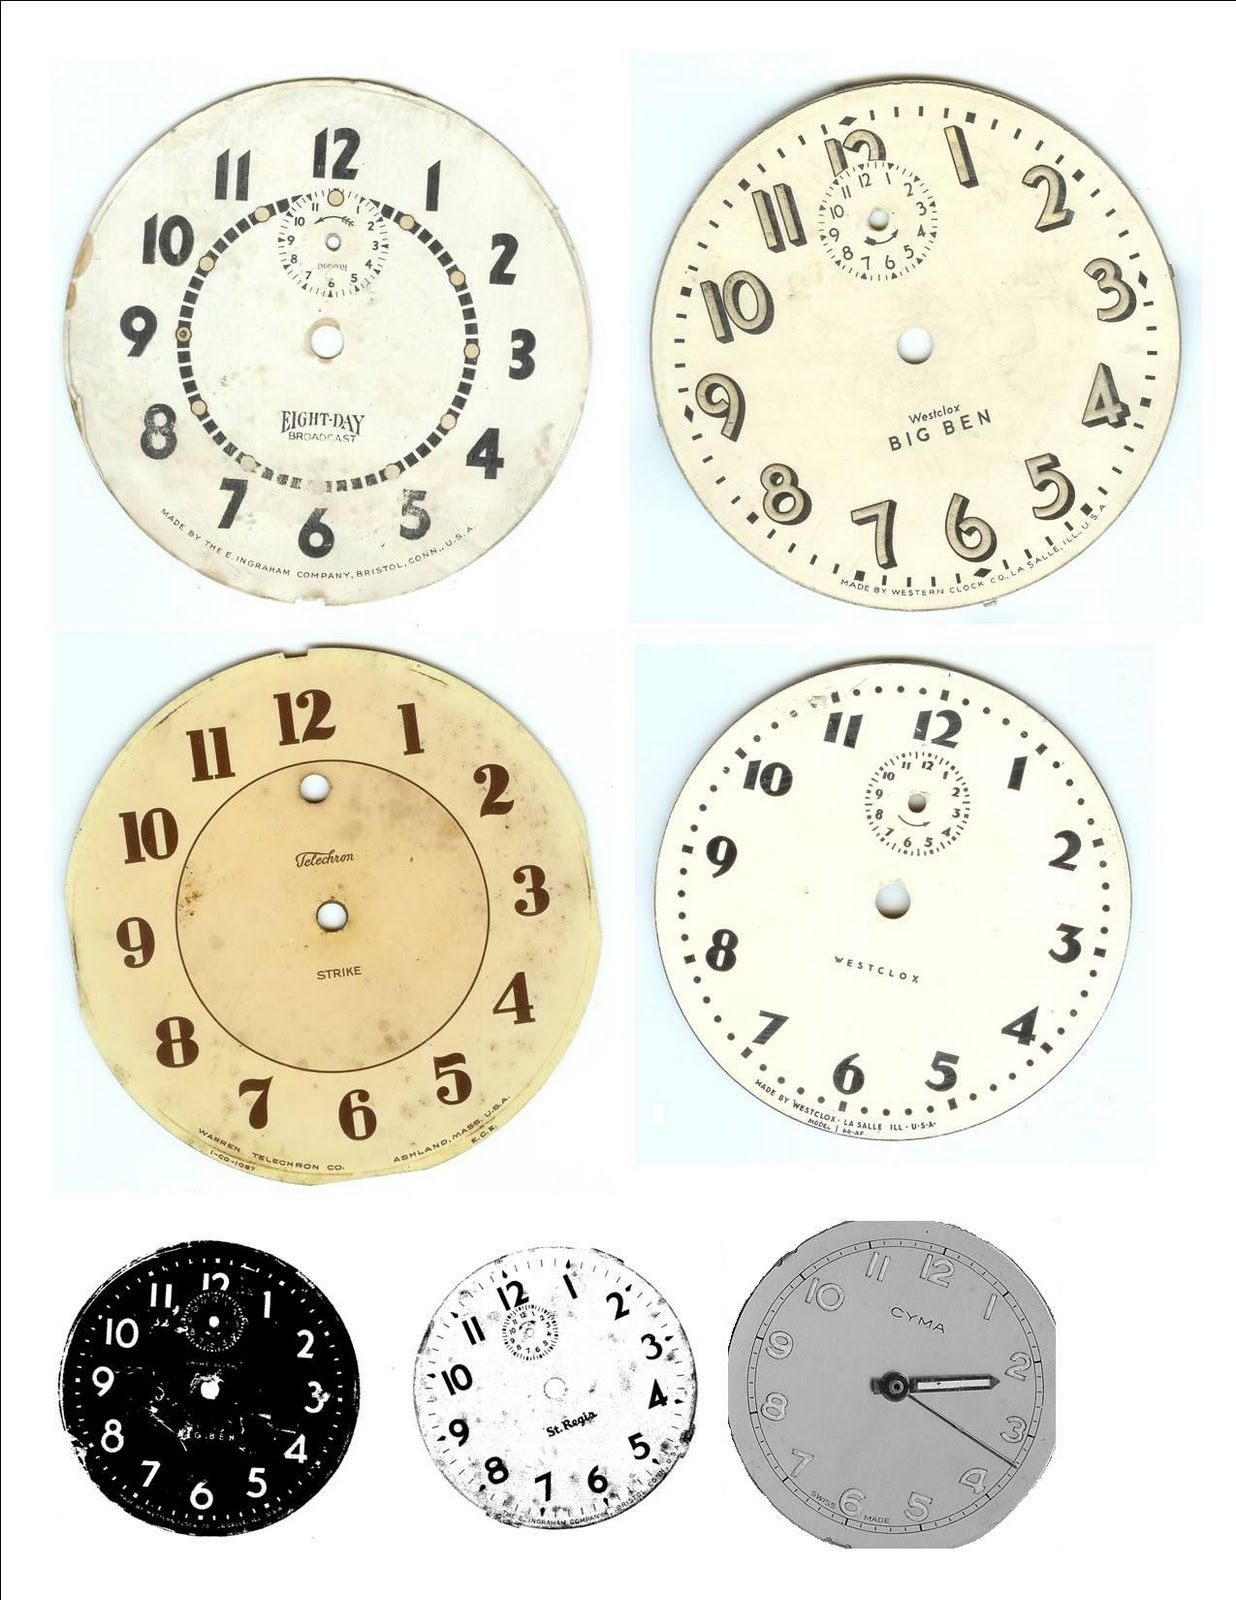 graphic about Printable Clock Faces for Crafts identified as Printable clock faces - shabby stylish your personal! wedding day